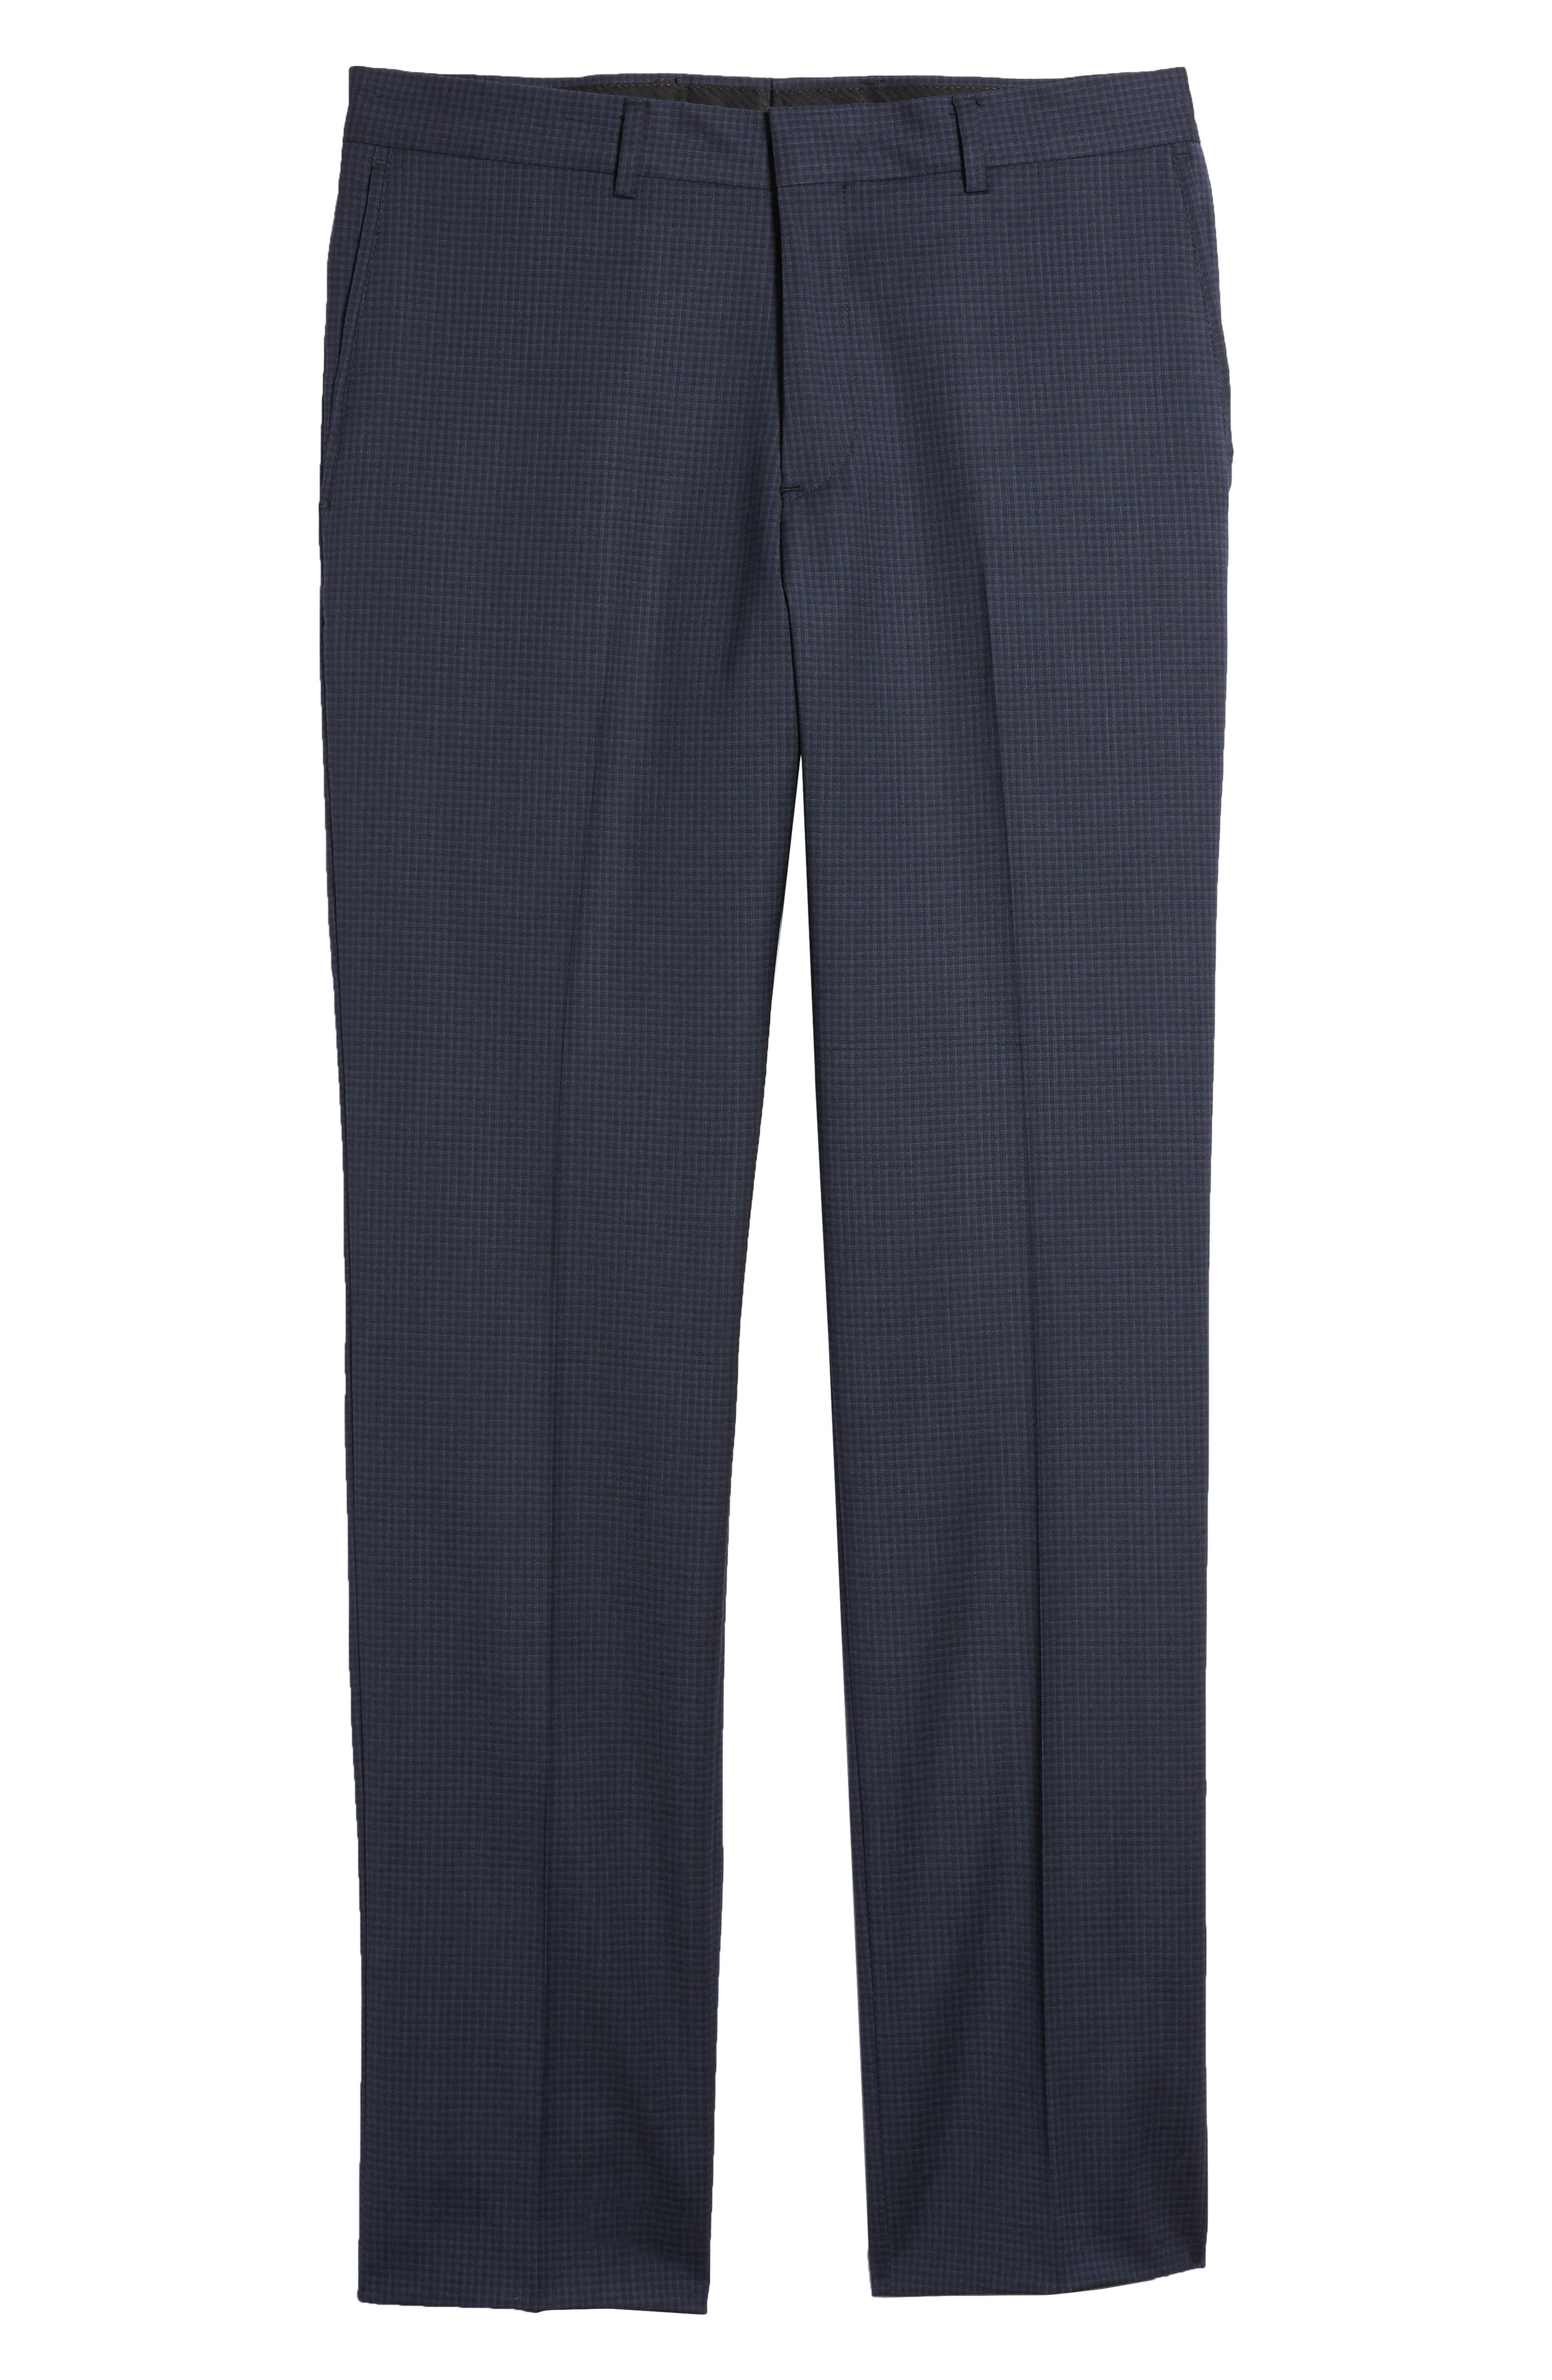 Tech-Smart Check Flat Front Stretch Wool Pants,                             Alternate thumbnail 6, color,                             Navy